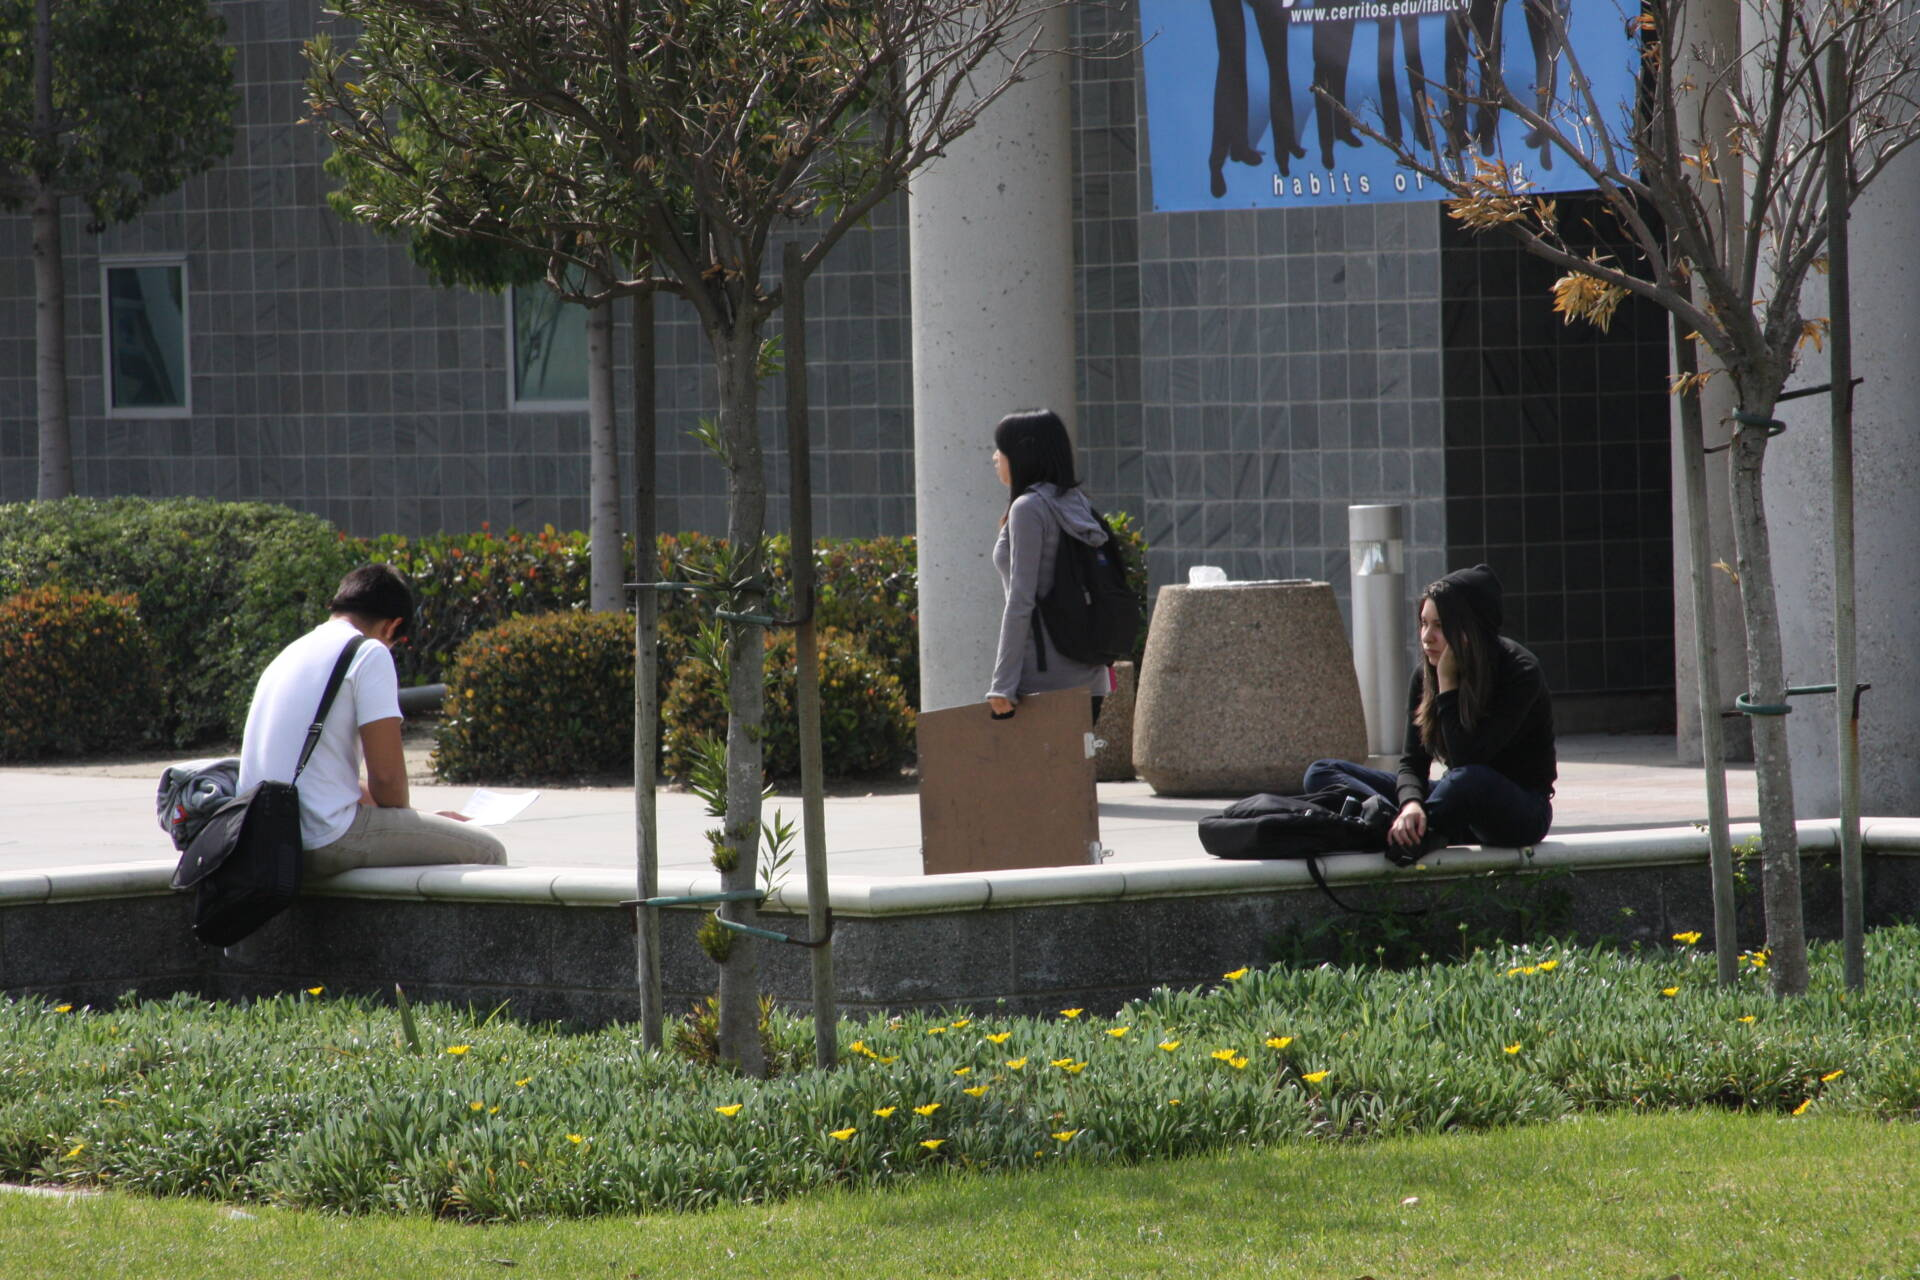 Two Cerritos College students, a young man and a young woman, sit on a low stone wall outside a gray classroom building. A third woman is passing by them on the sidewalk, carrying an artist's portfolio.